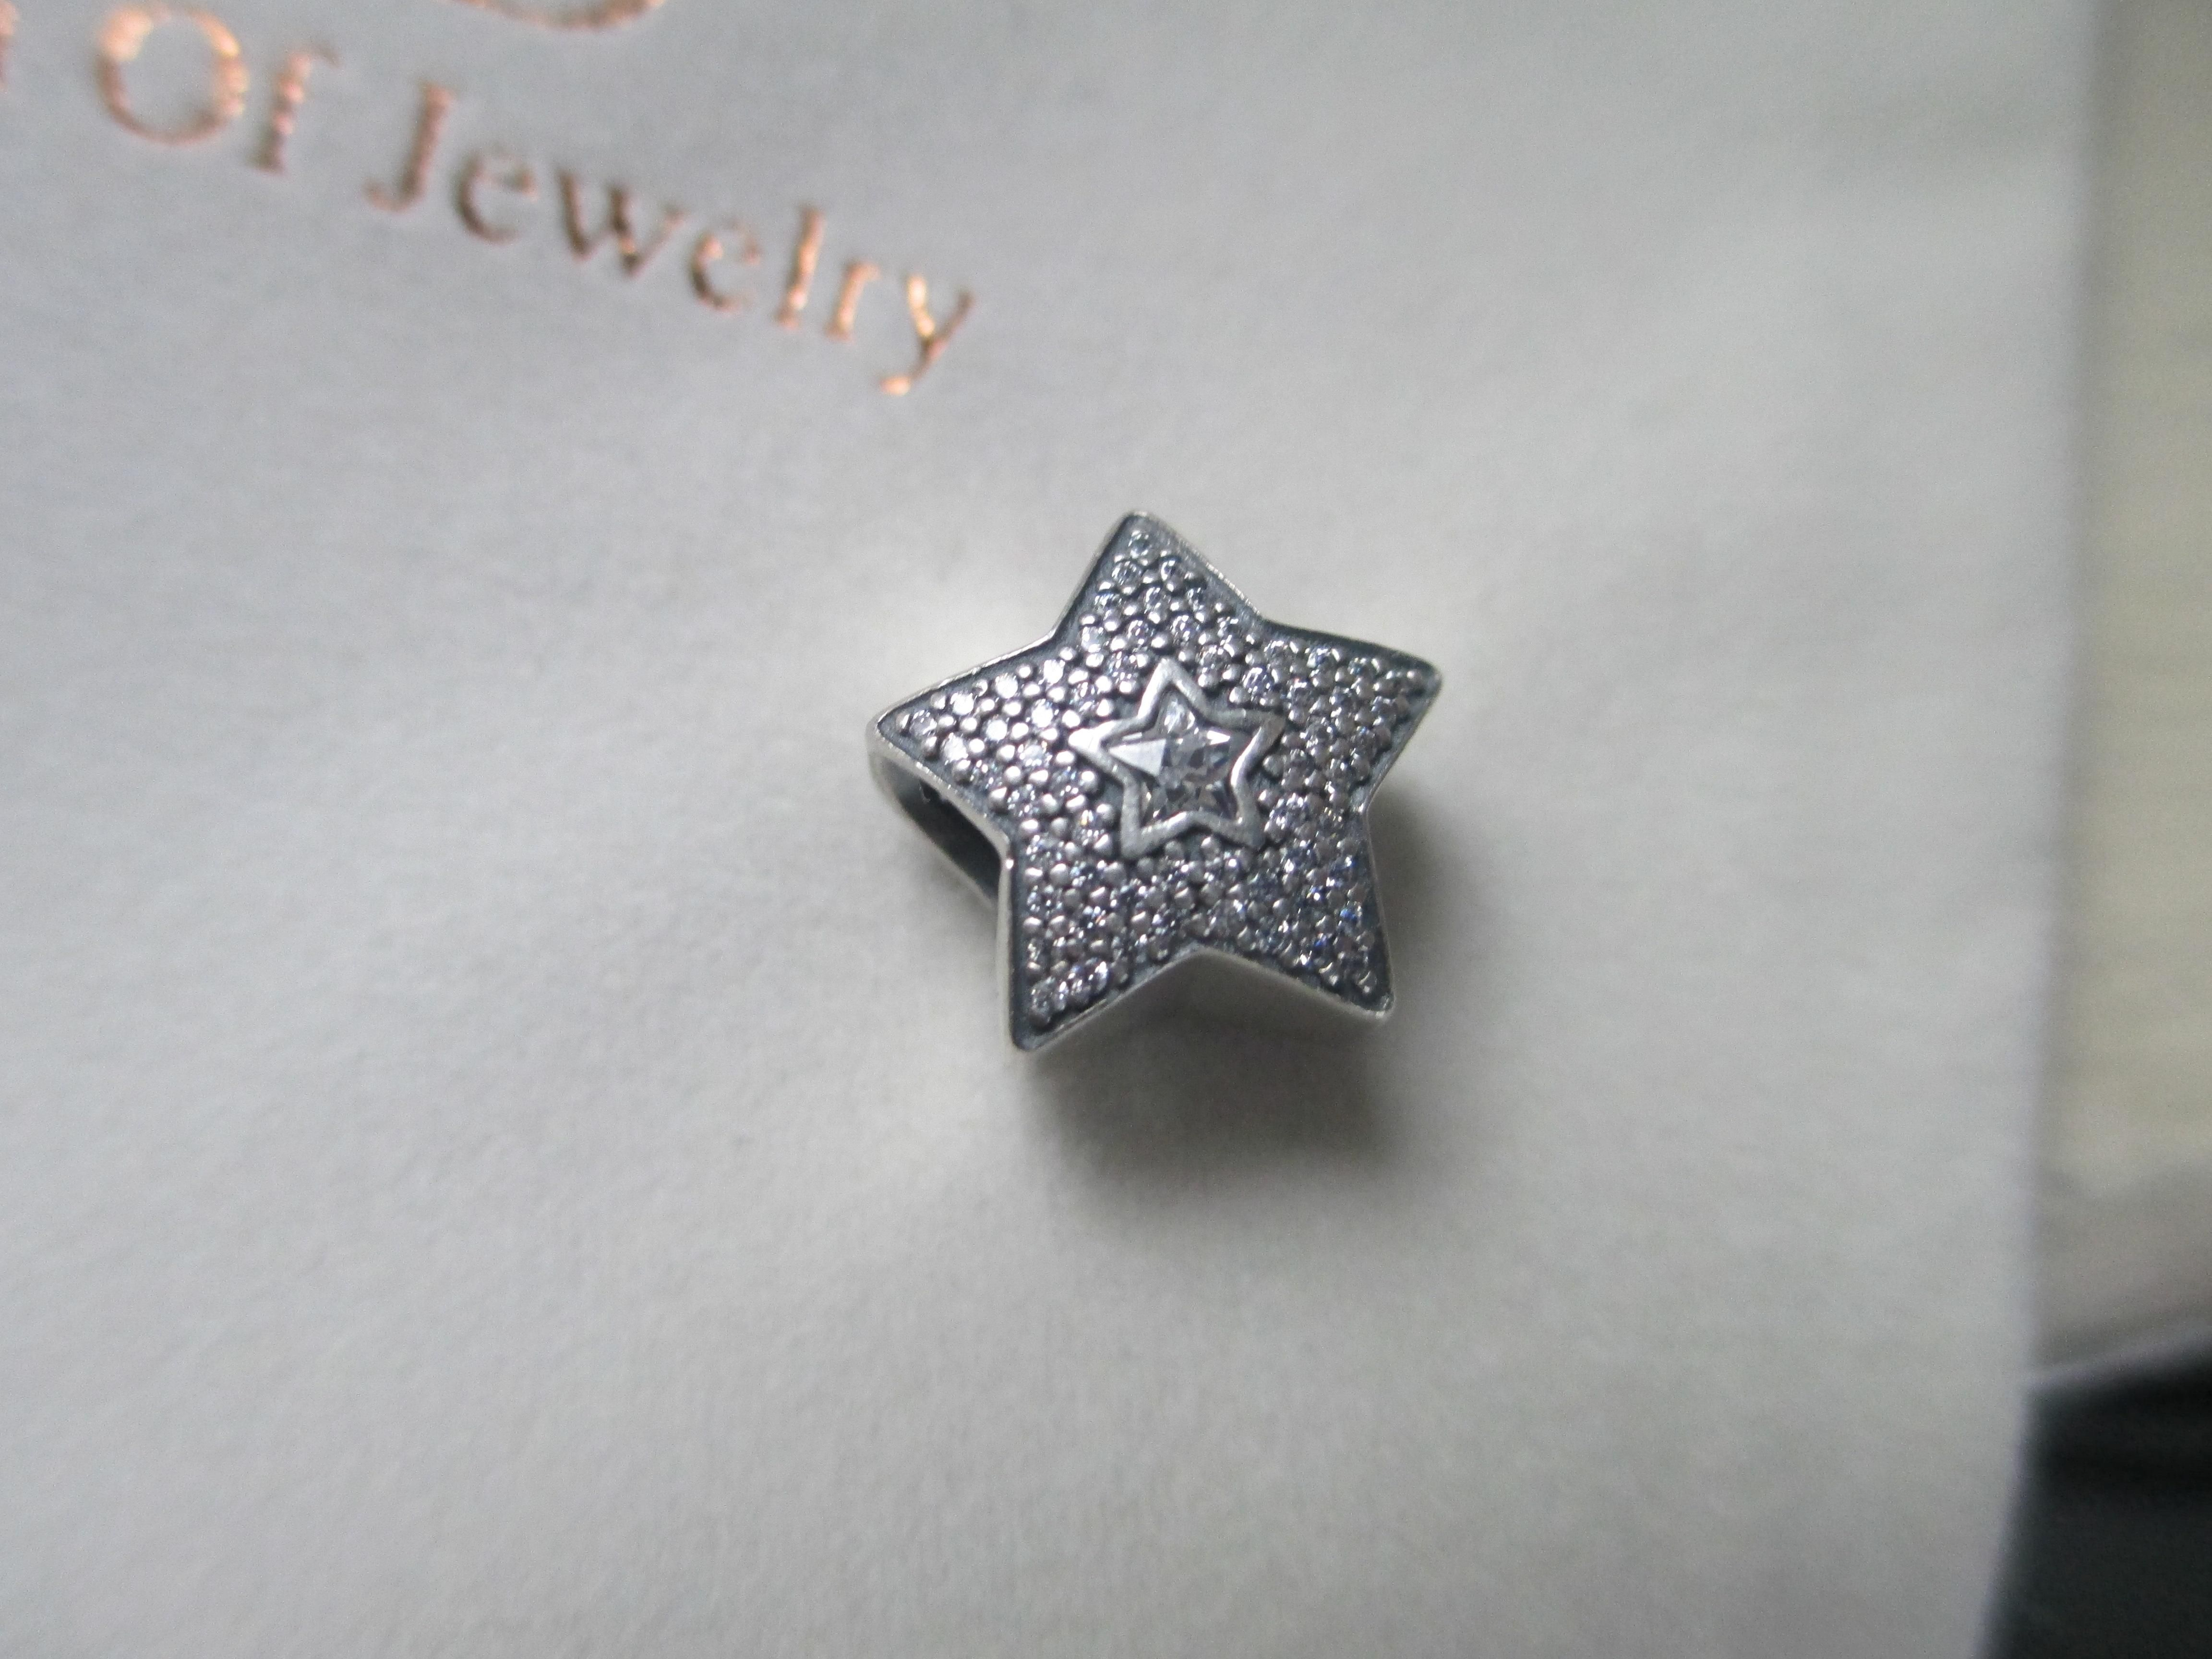 75d77bad8 Authentic Pandora Pave Wishing Star Charm 791384CZ (S925 ALE) with Jared  pouch new.